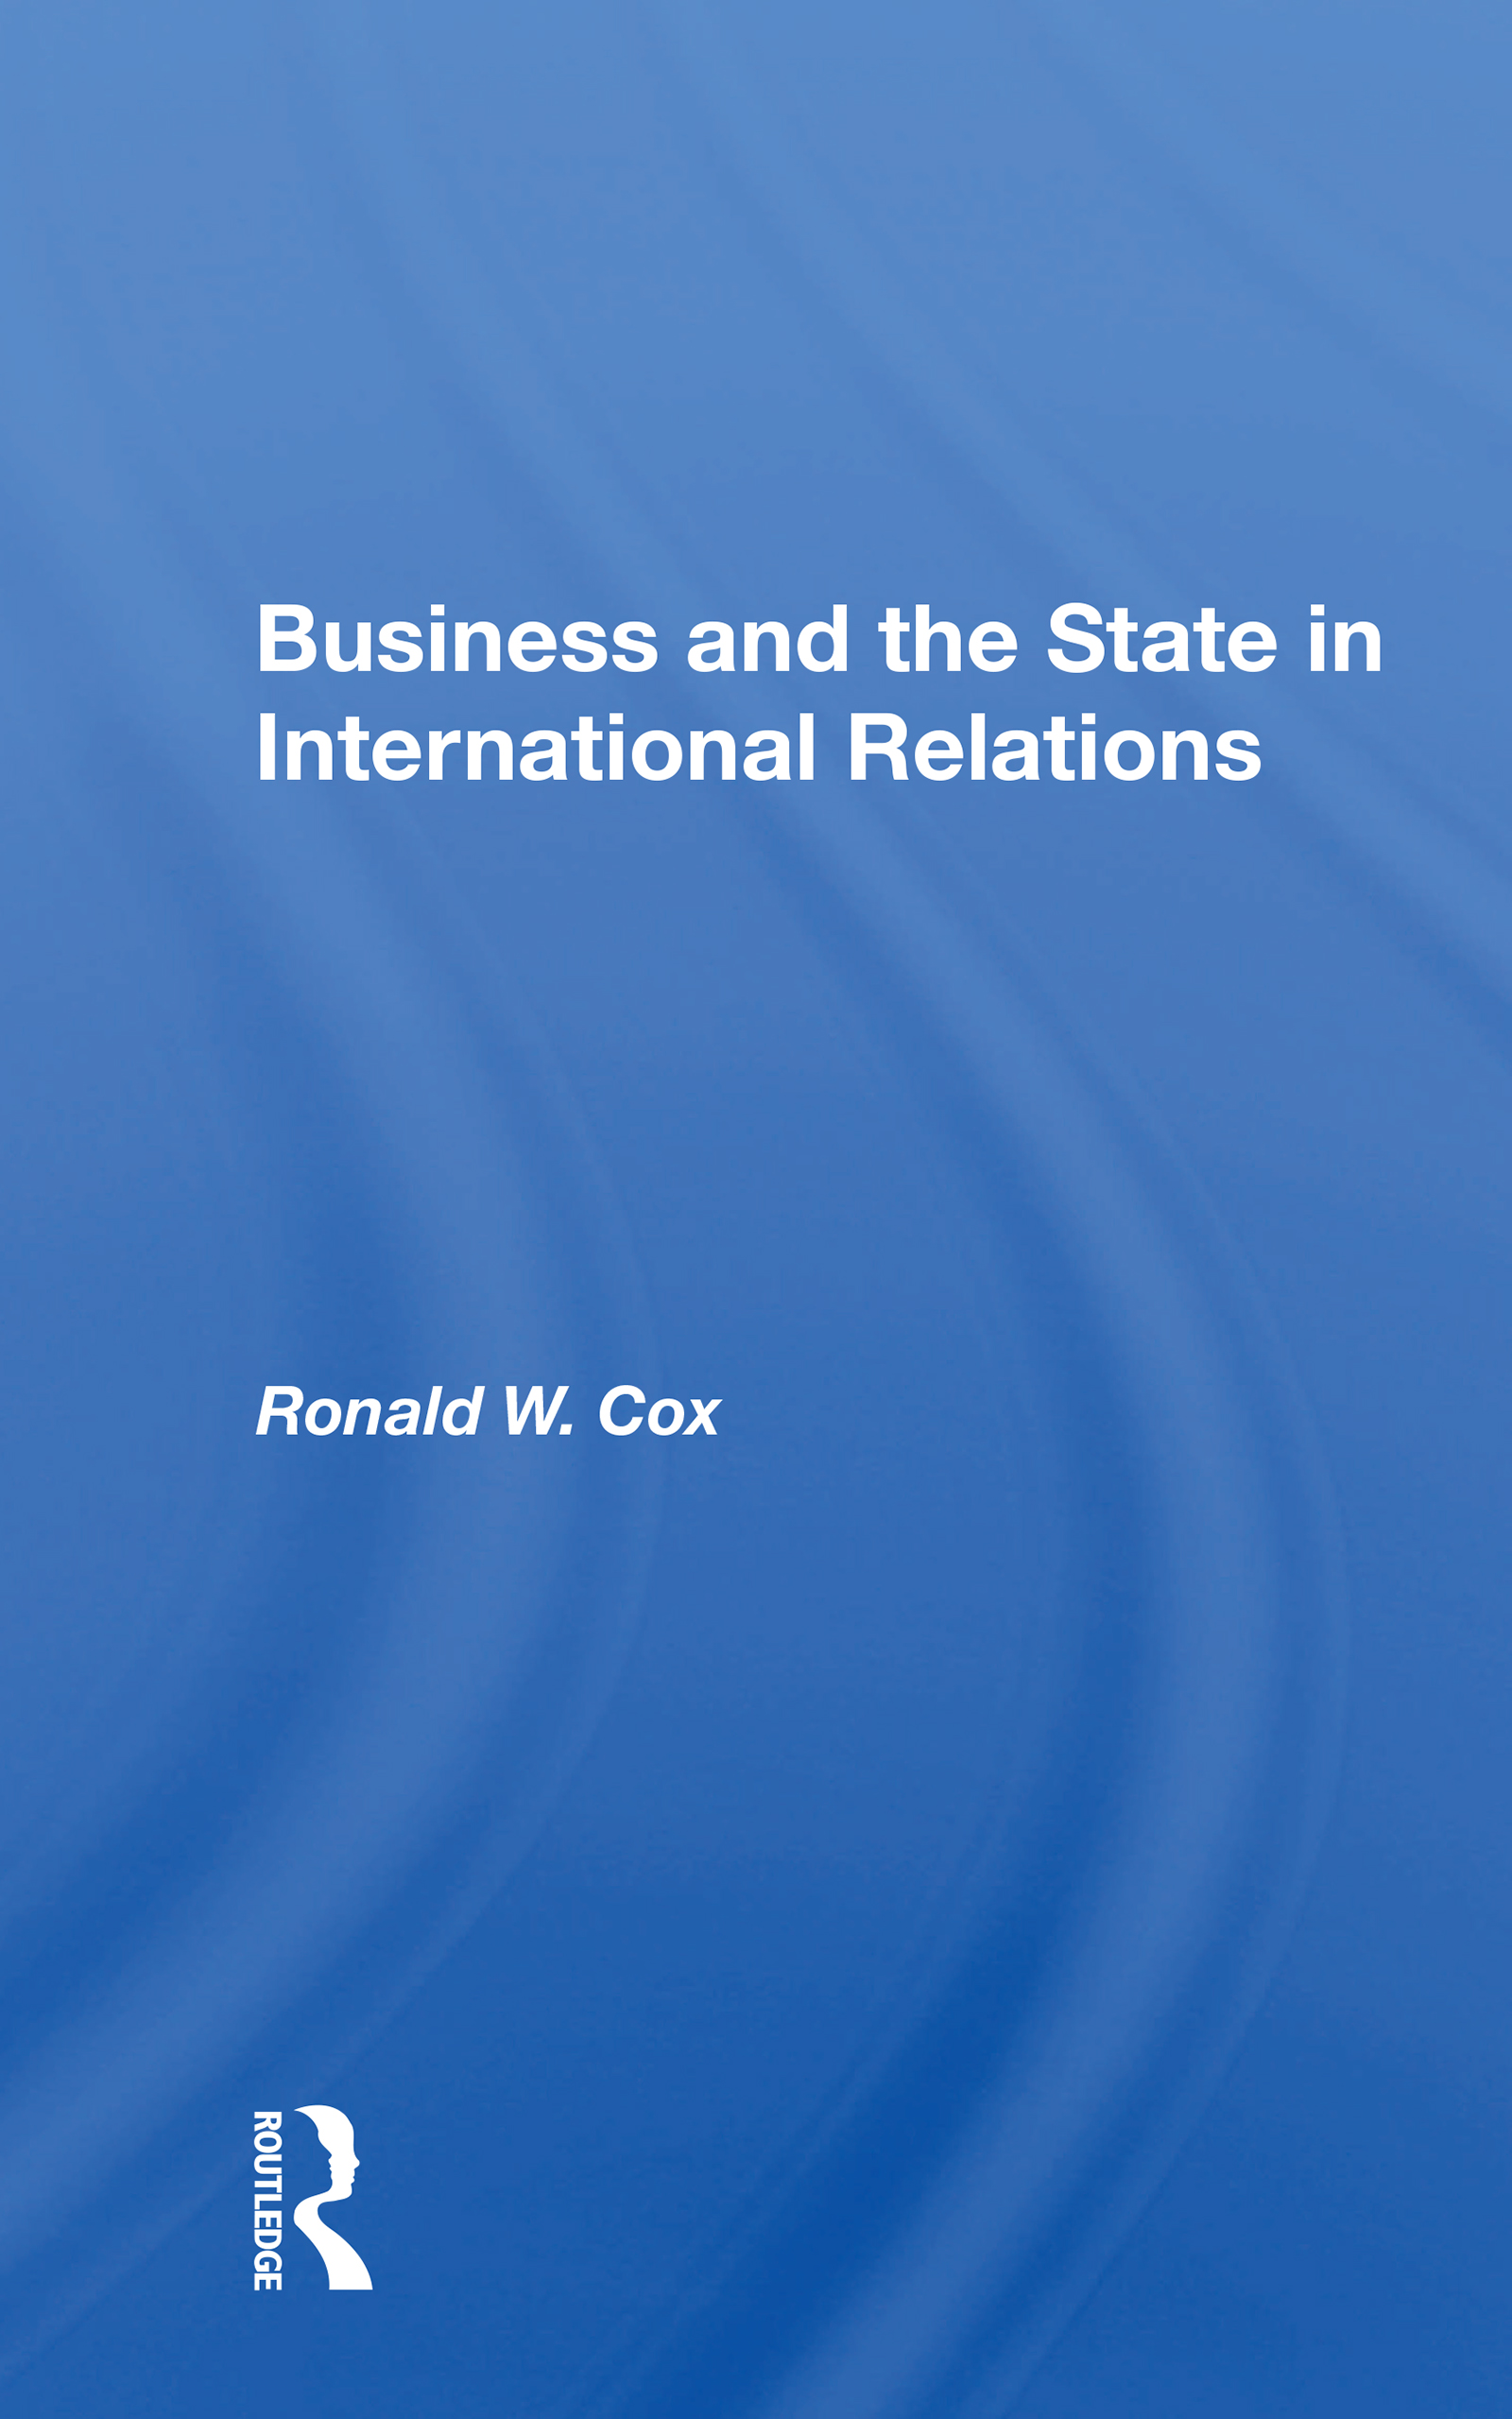 Business and the State in International Relations